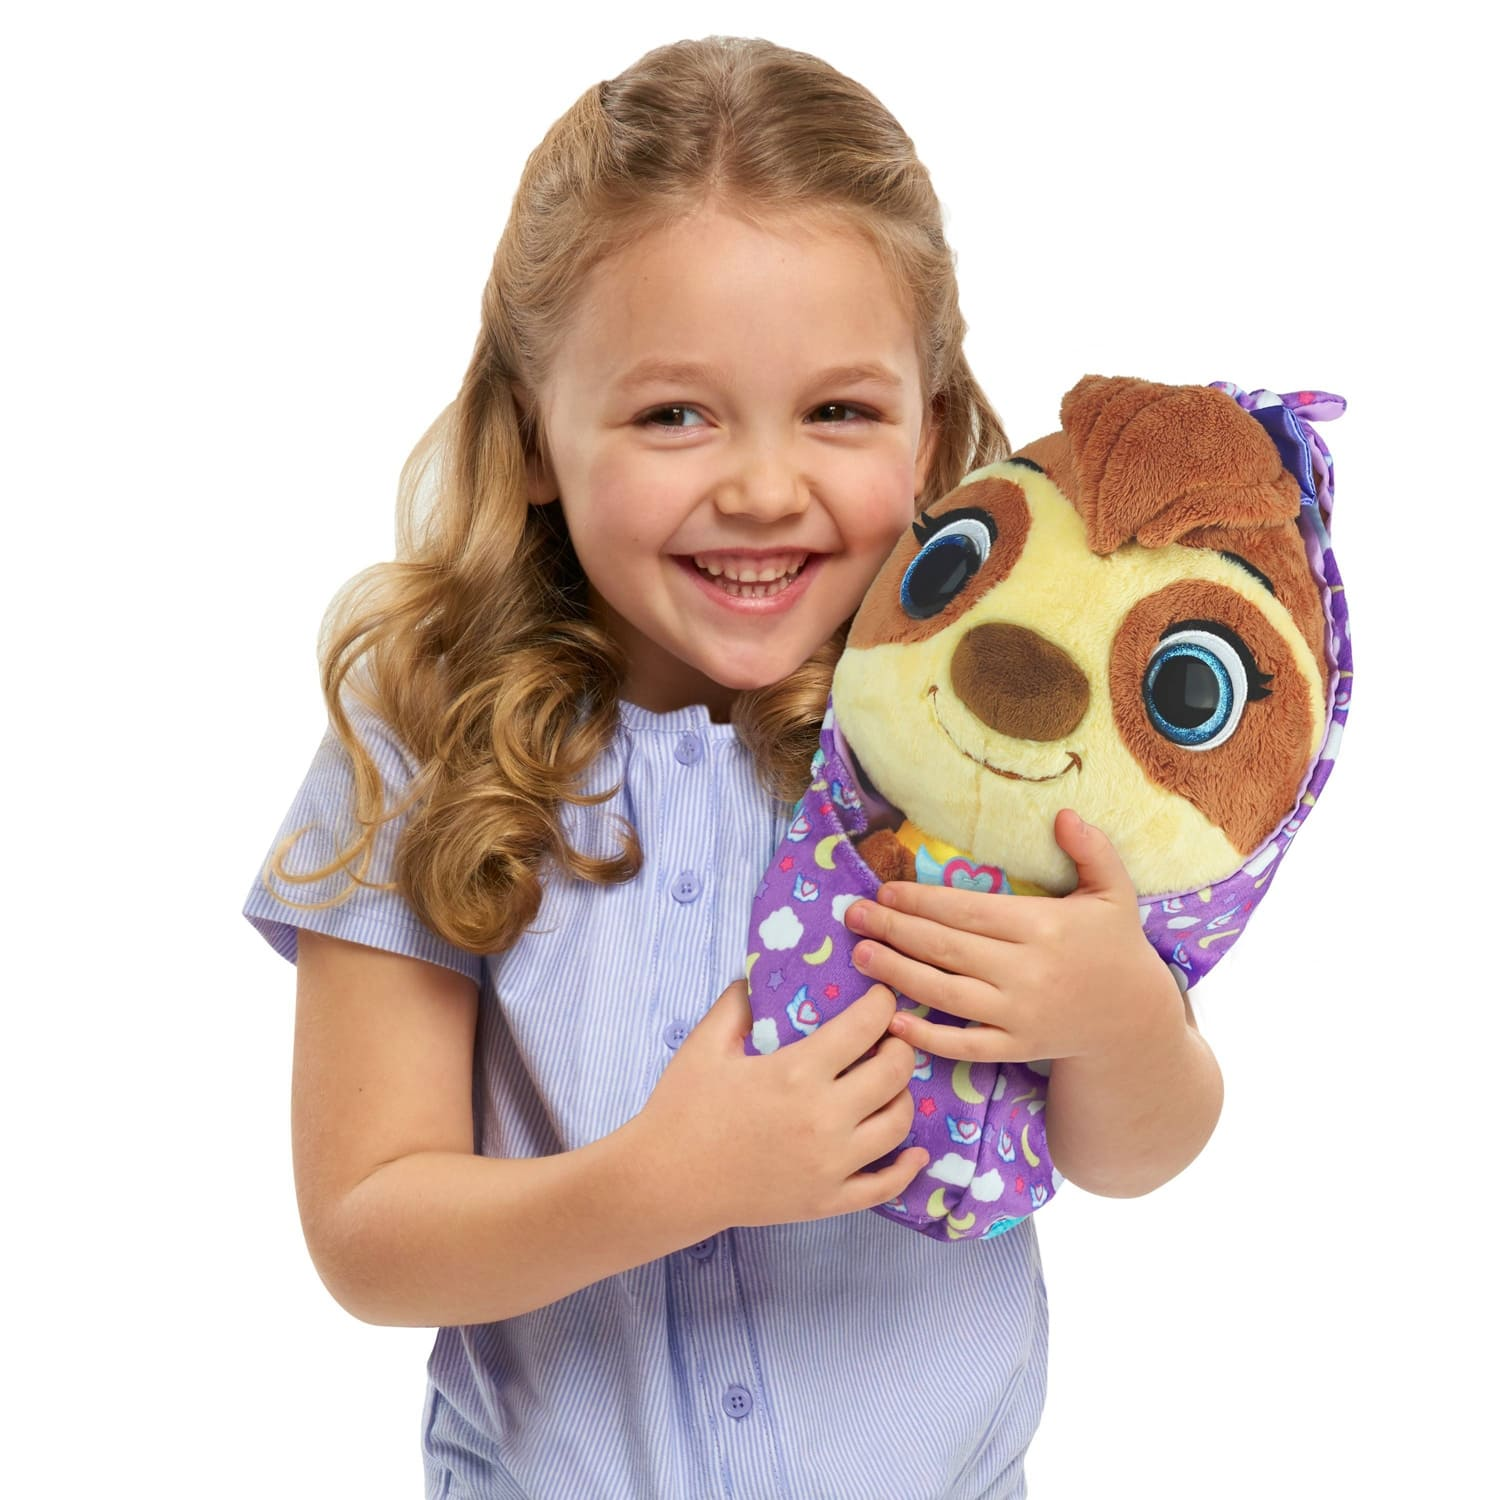 Disney T.O.T.S. Cuddle And Wrap Sunny the Sloth Plush $5.84 or Pearl the Piglet $6.49, FS with redcard or prime or $35+